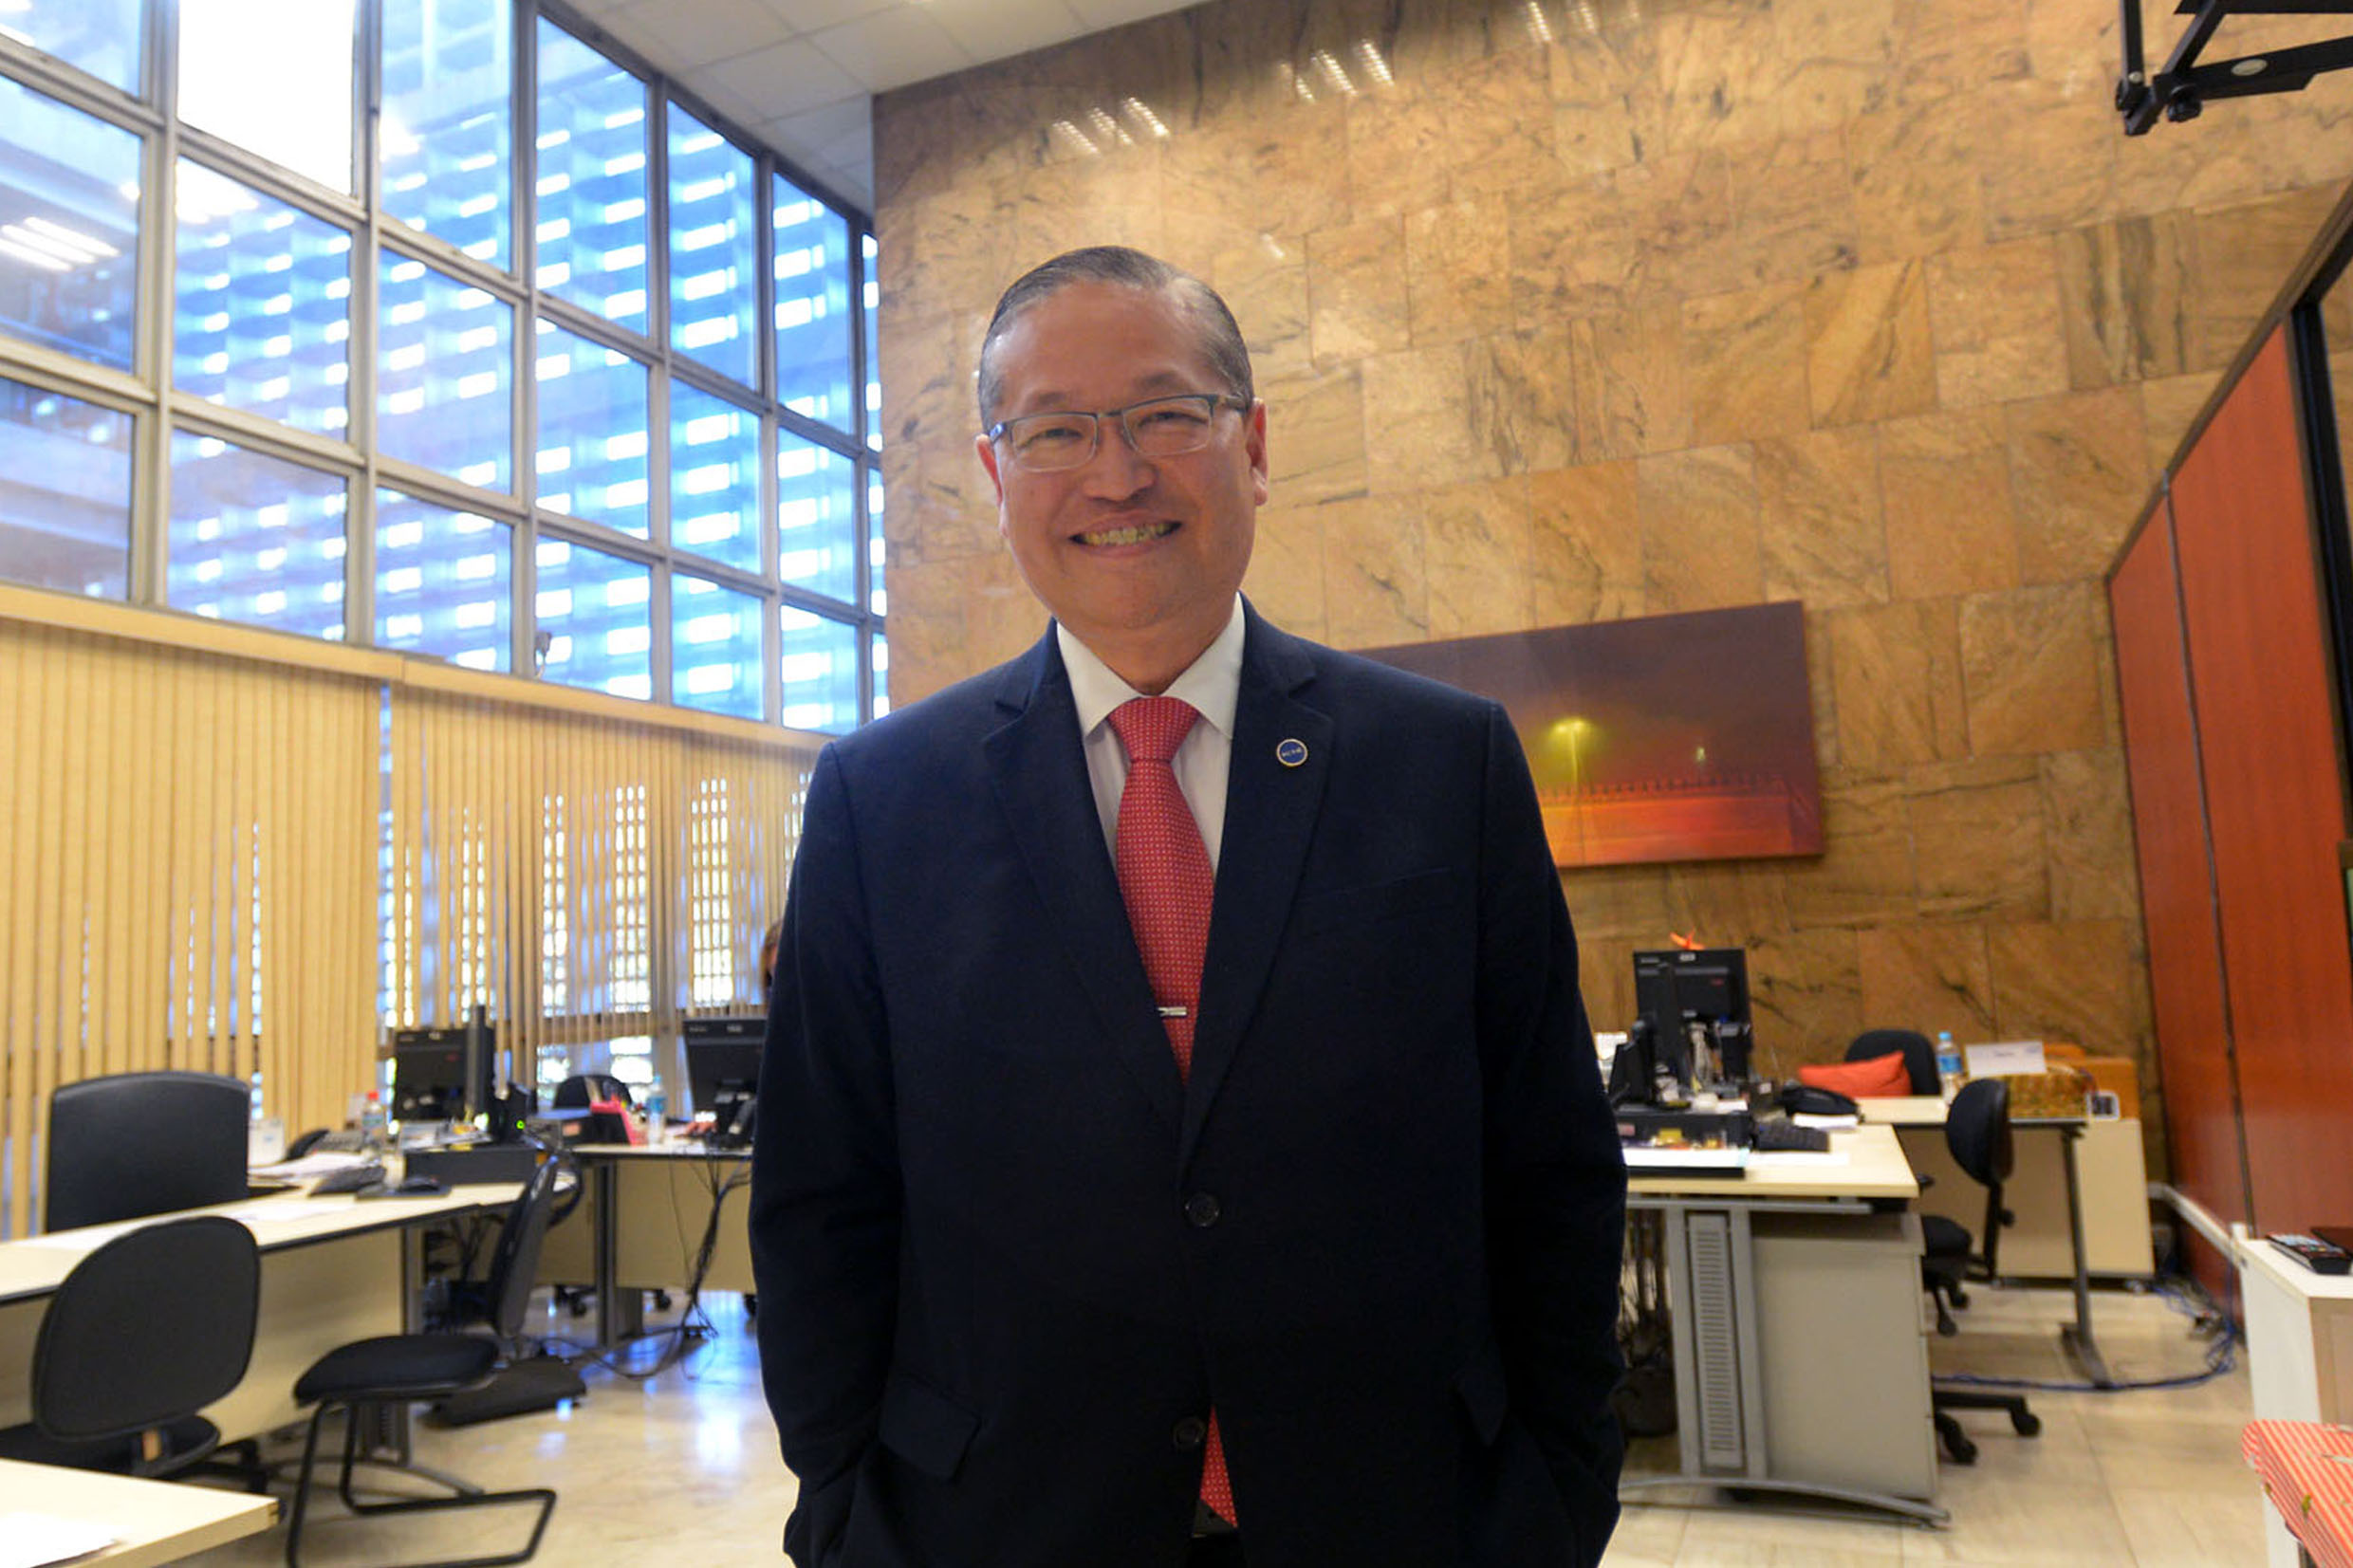 Carlos Takahashi<a style='float:right' href='https://www3.al.sp.gov.br/repositorio/noticia/N-11-2018/fg227199.jpg' target=_blank><img src='/_img/material-file-download-white.png' width='14px' alt='Clique para baixar a imagem'></a>